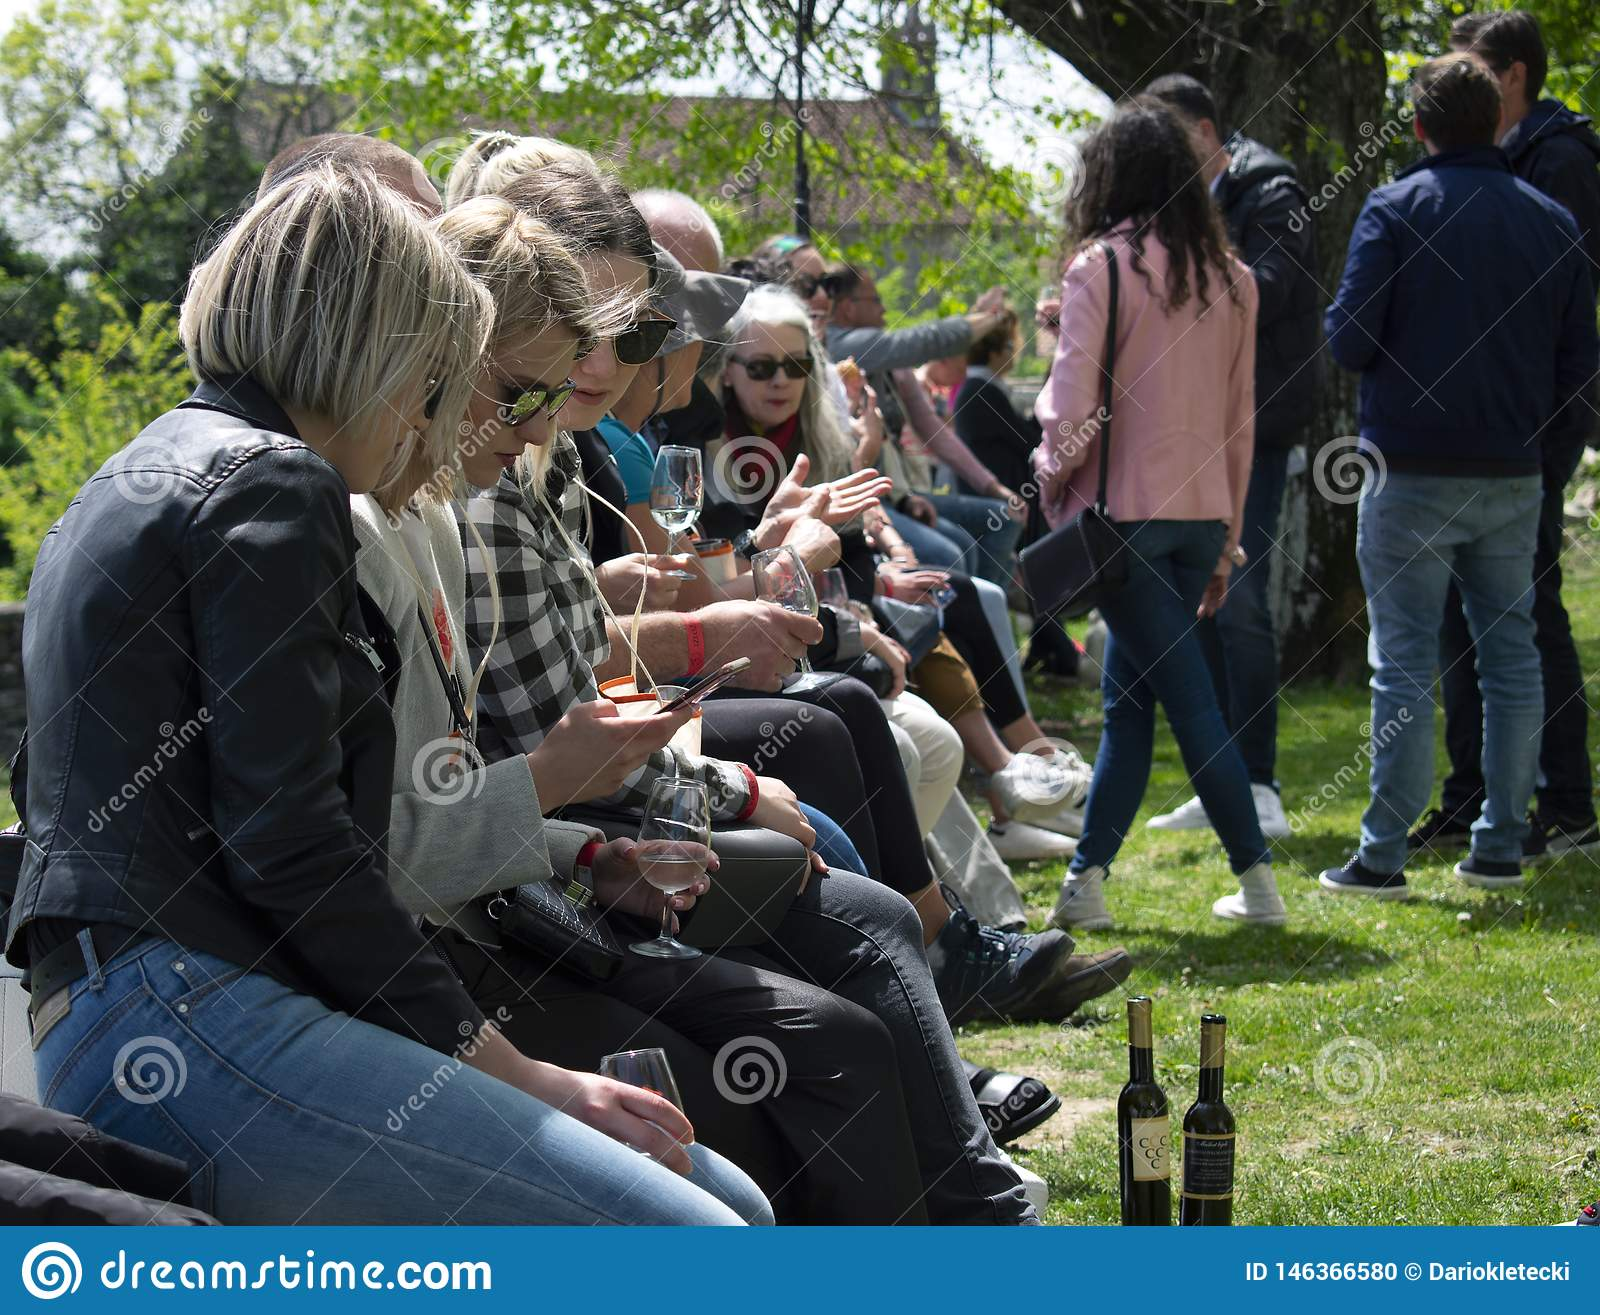 Group of young people at the wine festival